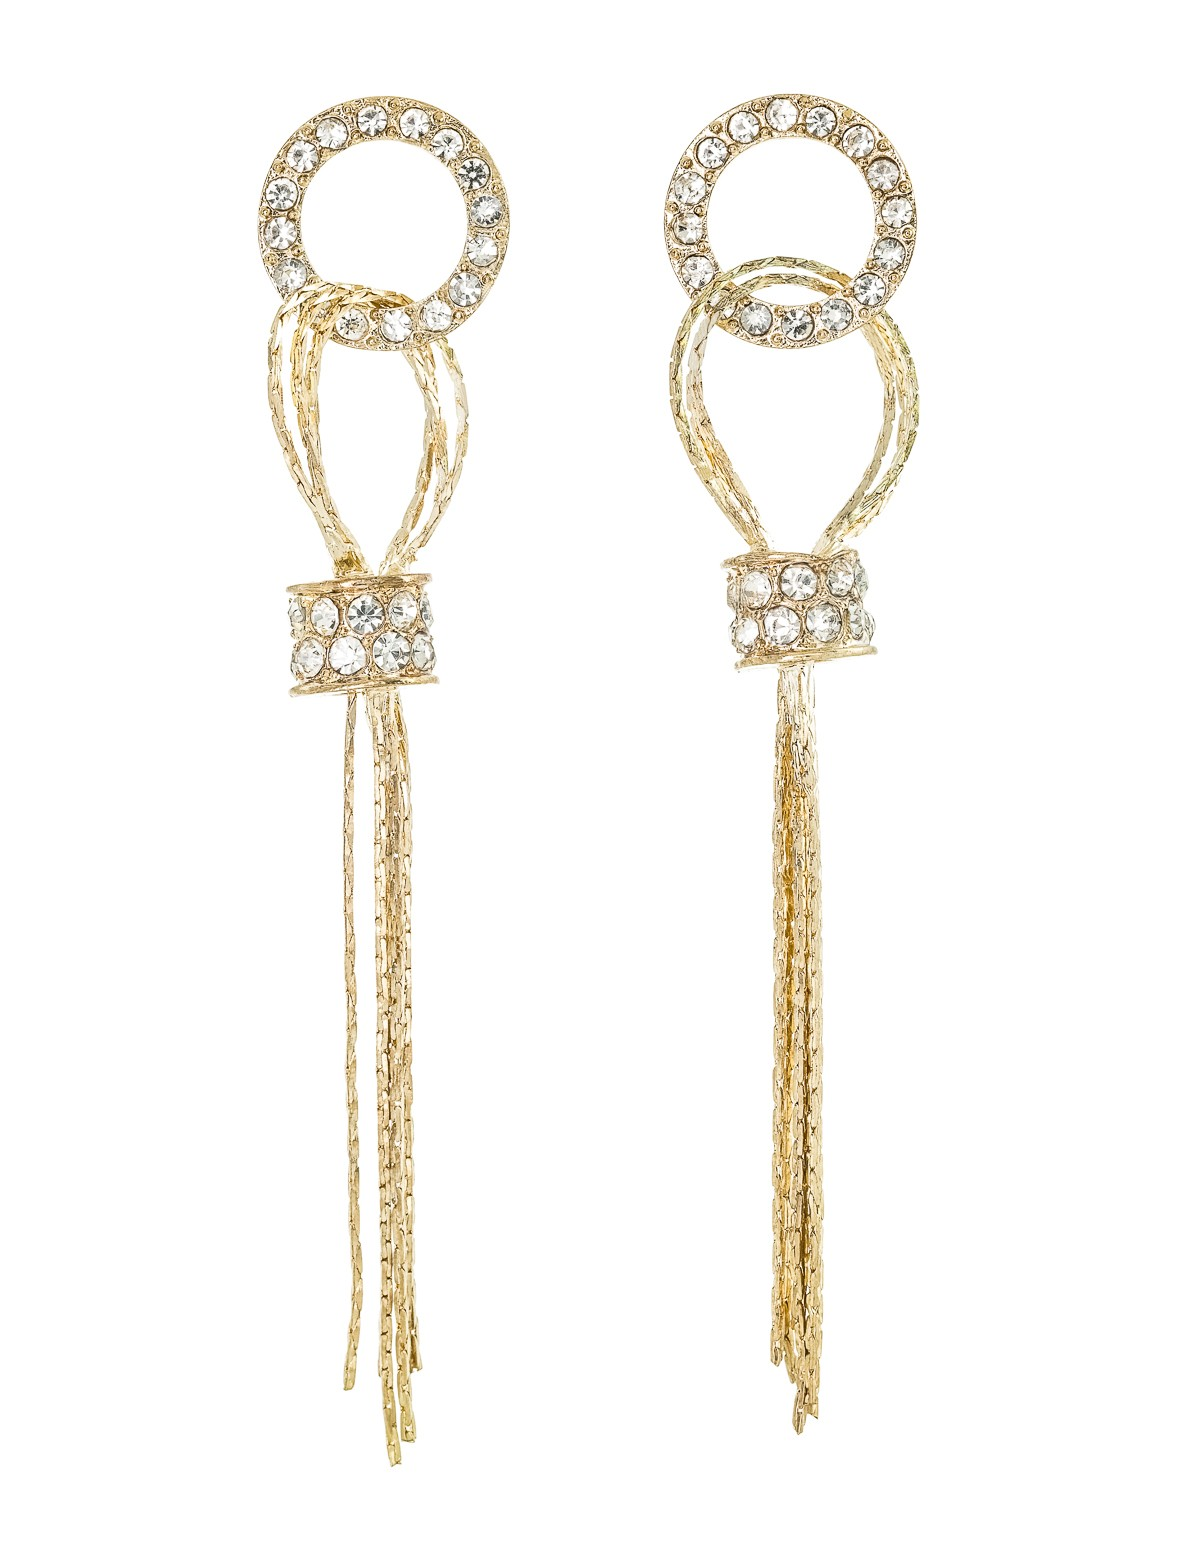 Looped Chain Earrings